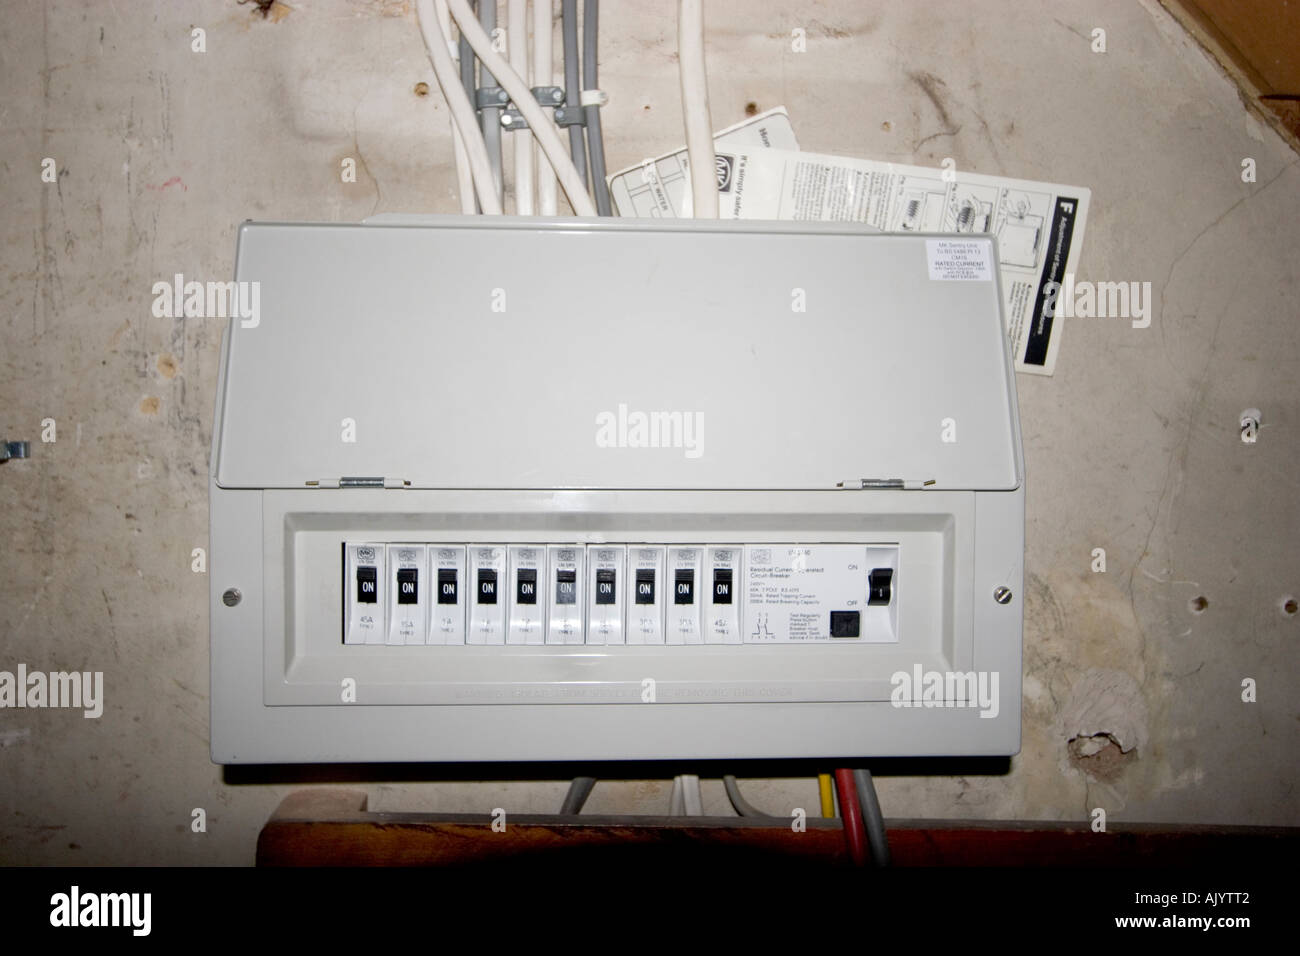 uk electrical fuse box under stairs of house AJYTT2 uk electrical fuse box under stairs of house stock photo, royalty house electrical fuse box at soozxer.org